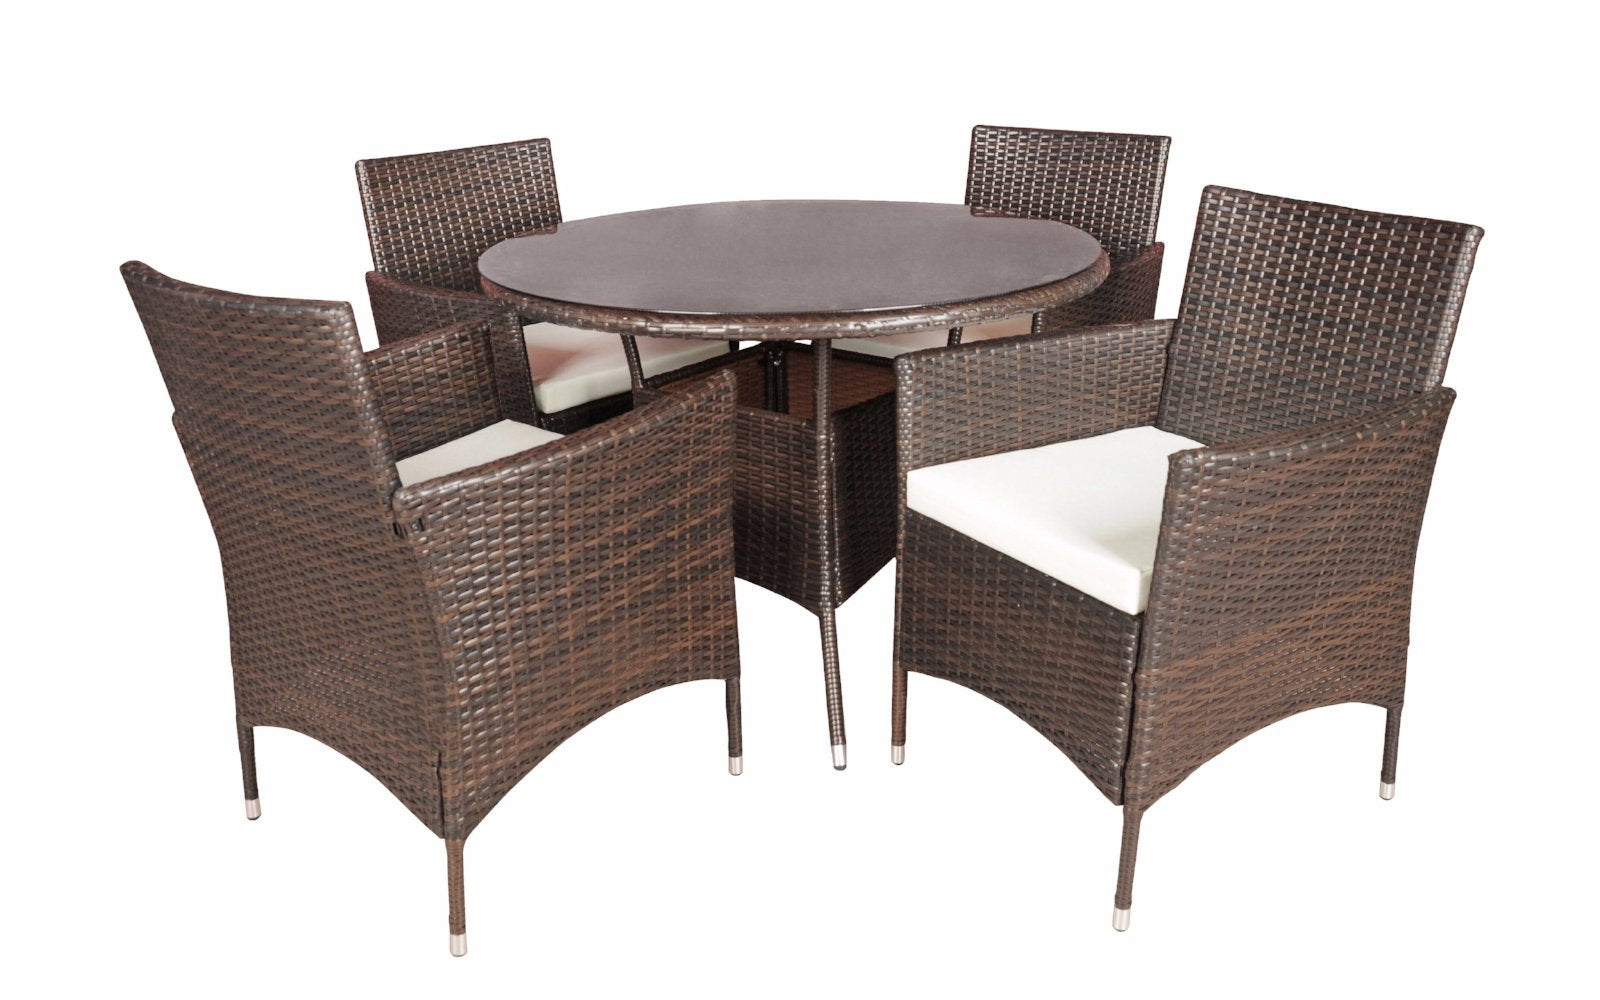 ... Malibu Outdoor Dining Table And Chairs Set Brown ...